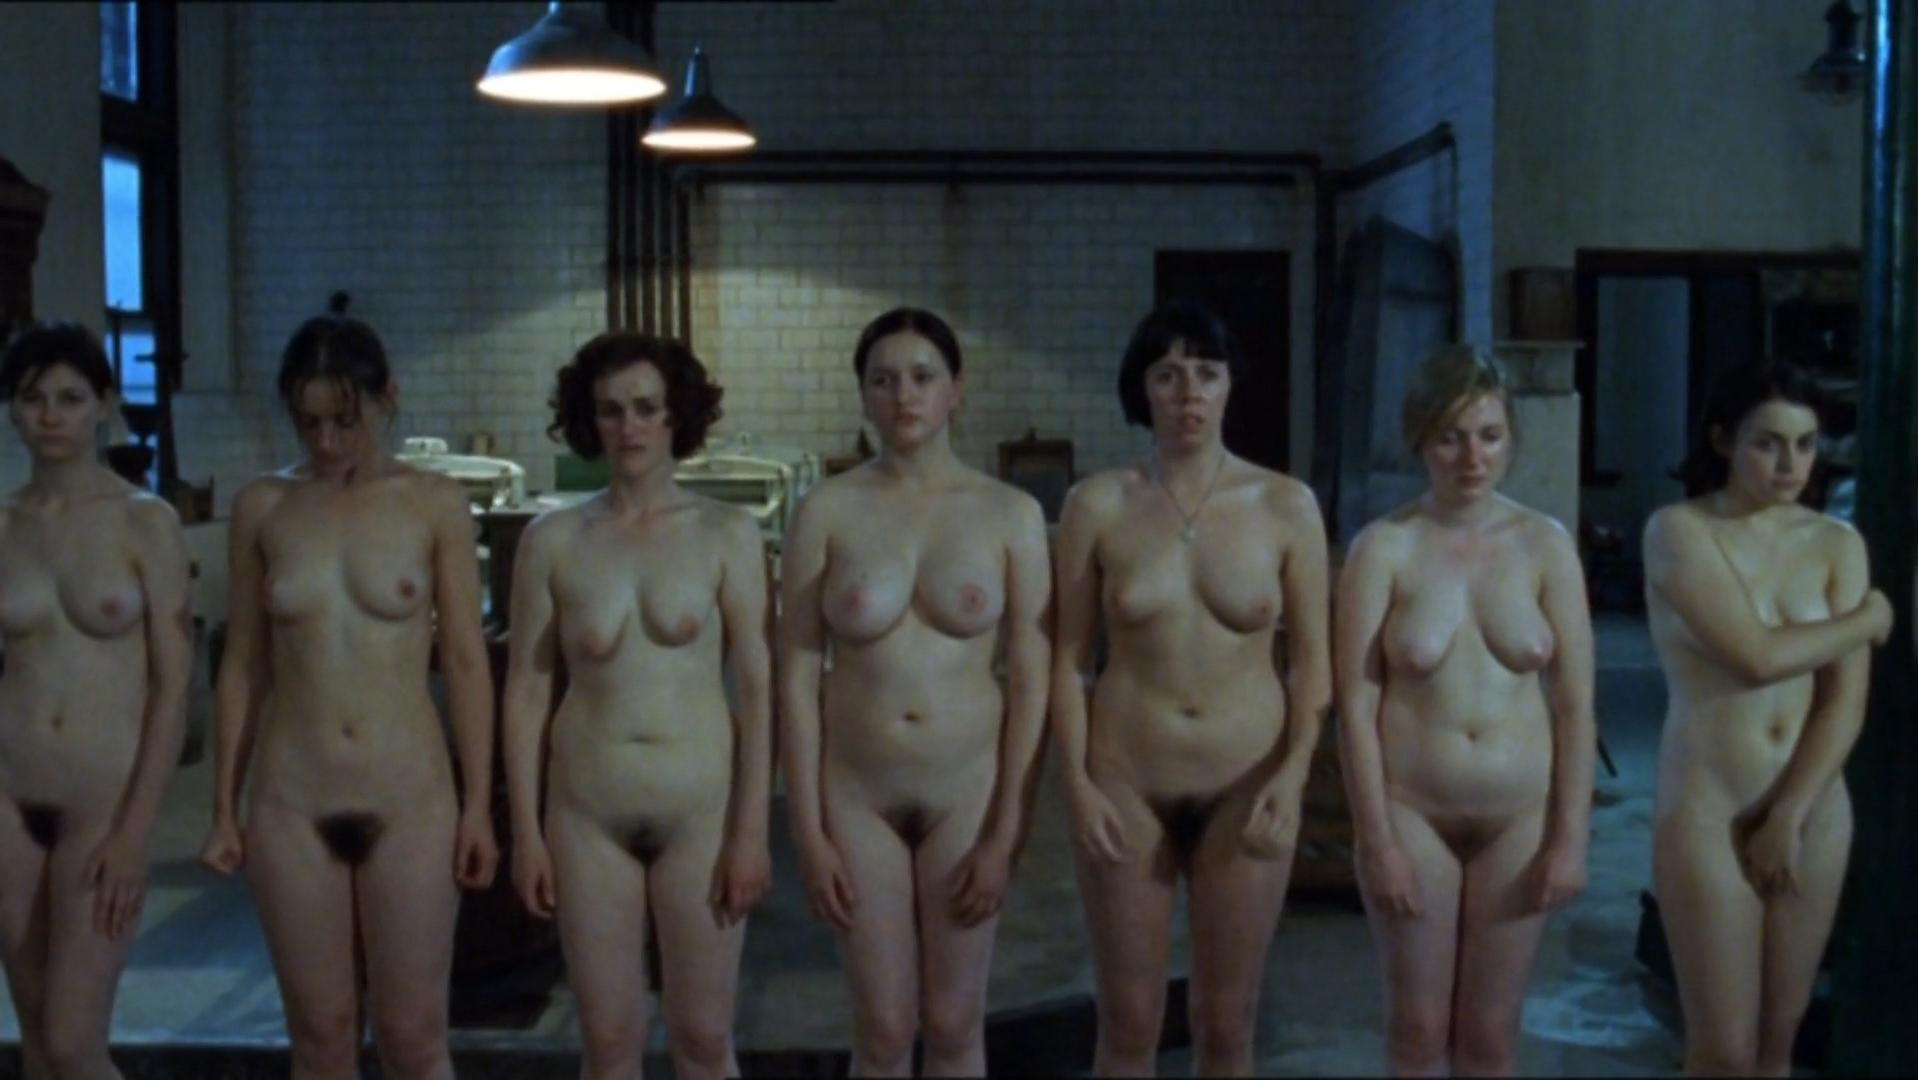 Anne-Marie Duff nude, Nora-Jane Noone nude, Dorothy Duffy nude, Eileen Walsh nude - The Magdalene Sisters (2002)